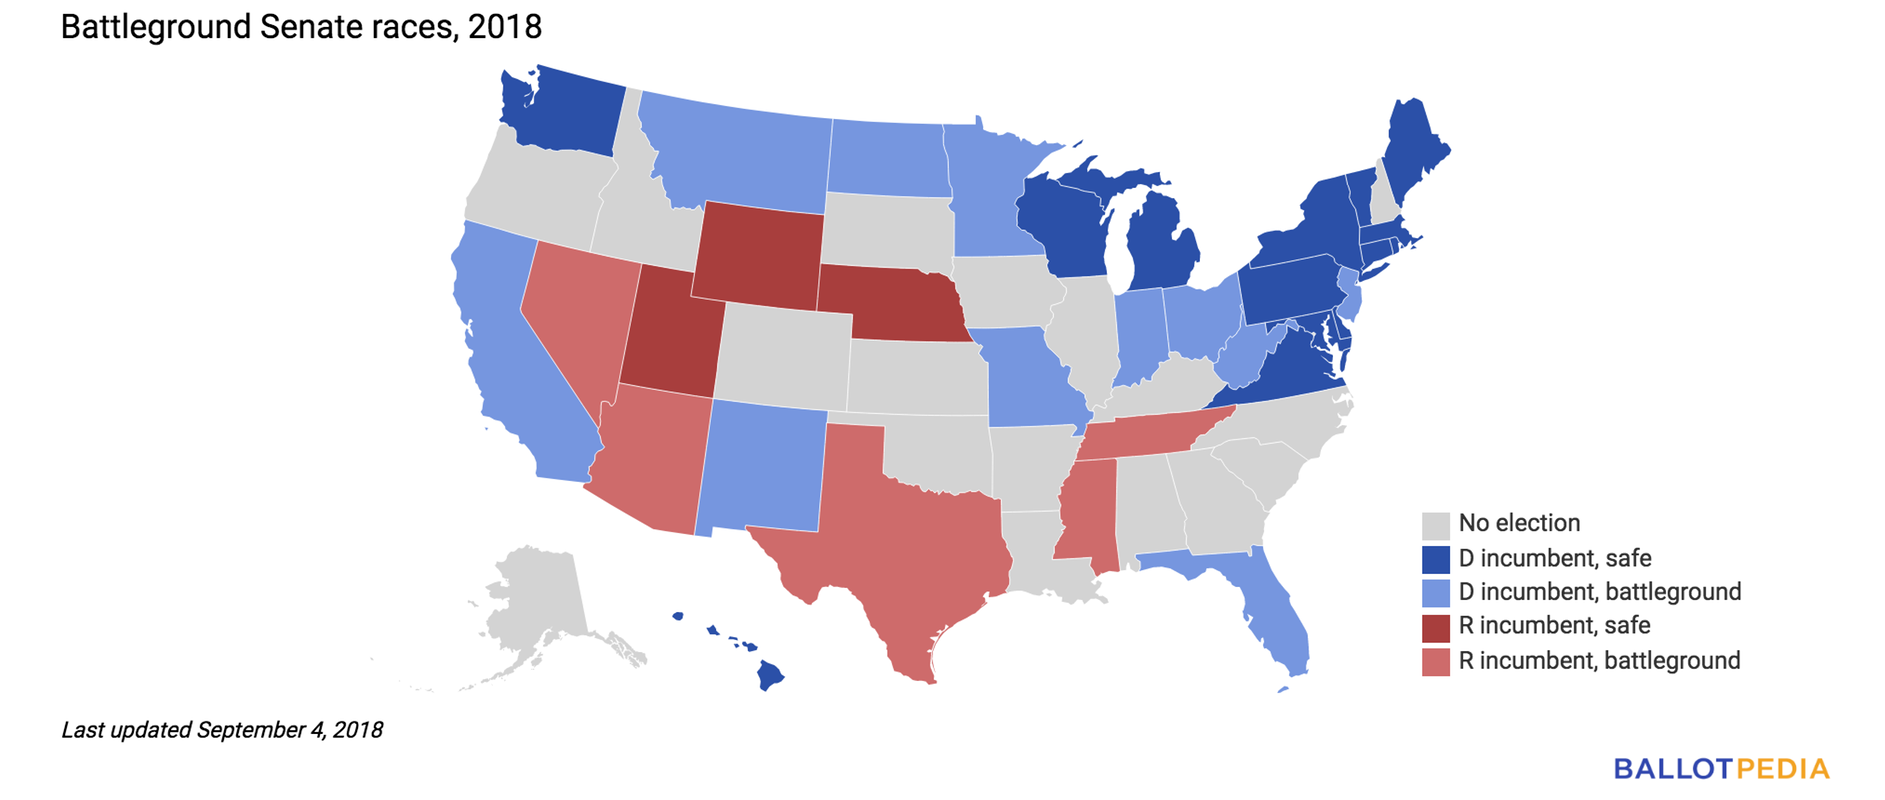 US_Senate_Battlegrounds_Map_Sept_4th_2018.png